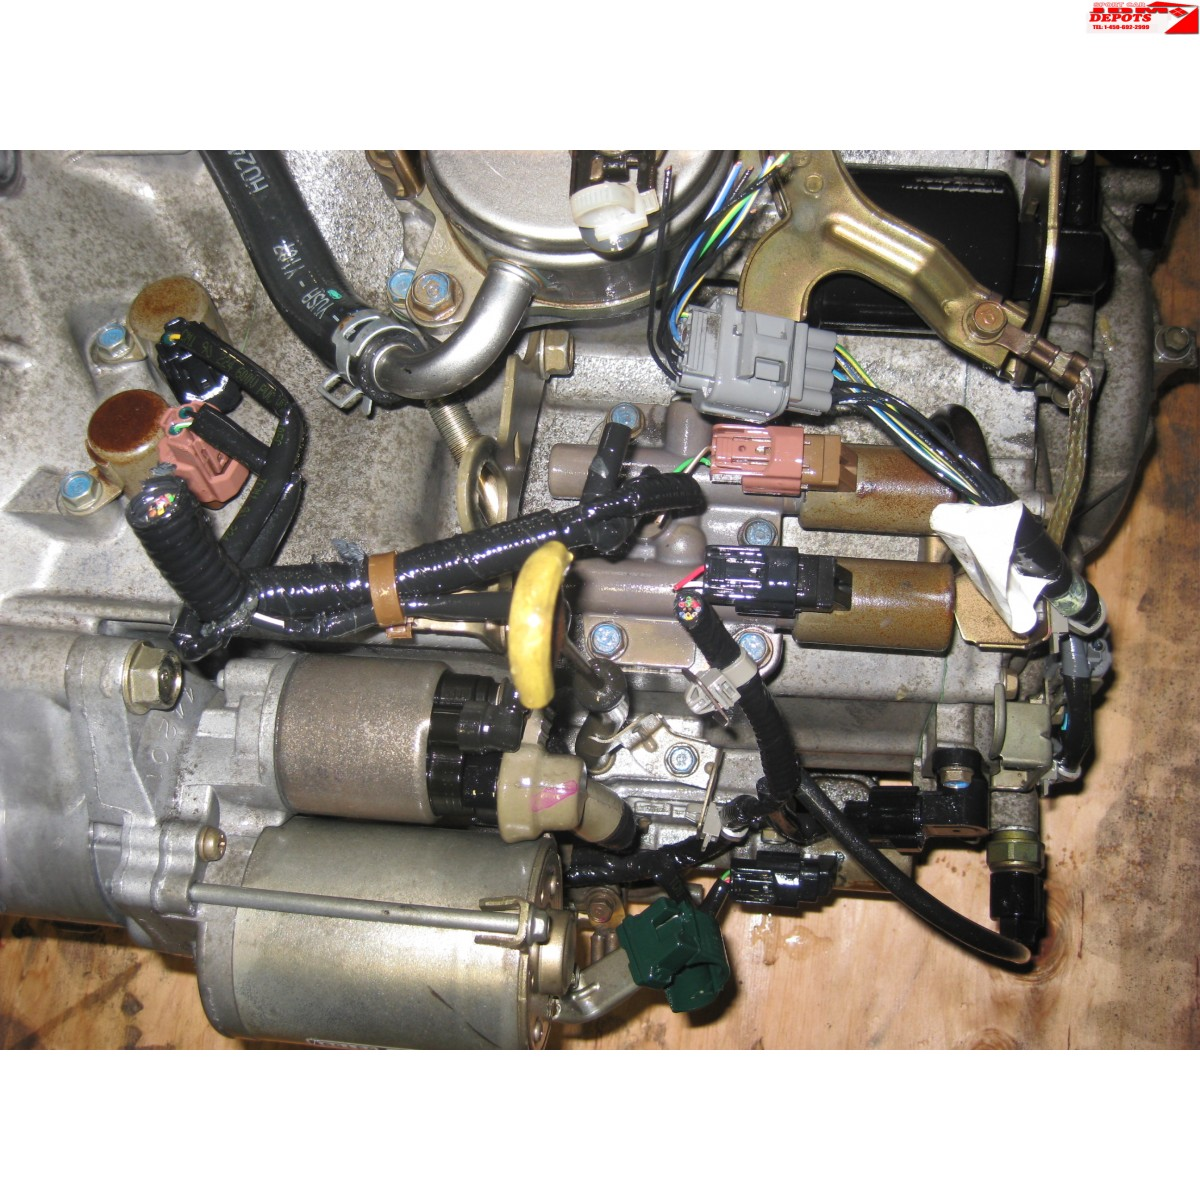 Your No 1 Source For All Jdm Engines Jdm Transmissions Jdm Parts Tel 1 450 692 2999 2004 2005 2006 Jdm Acura Tl 3 2l V6 J32a Automatic Transmission Mgsa Gearbox Jdm Acura Tl Auto Tran 04